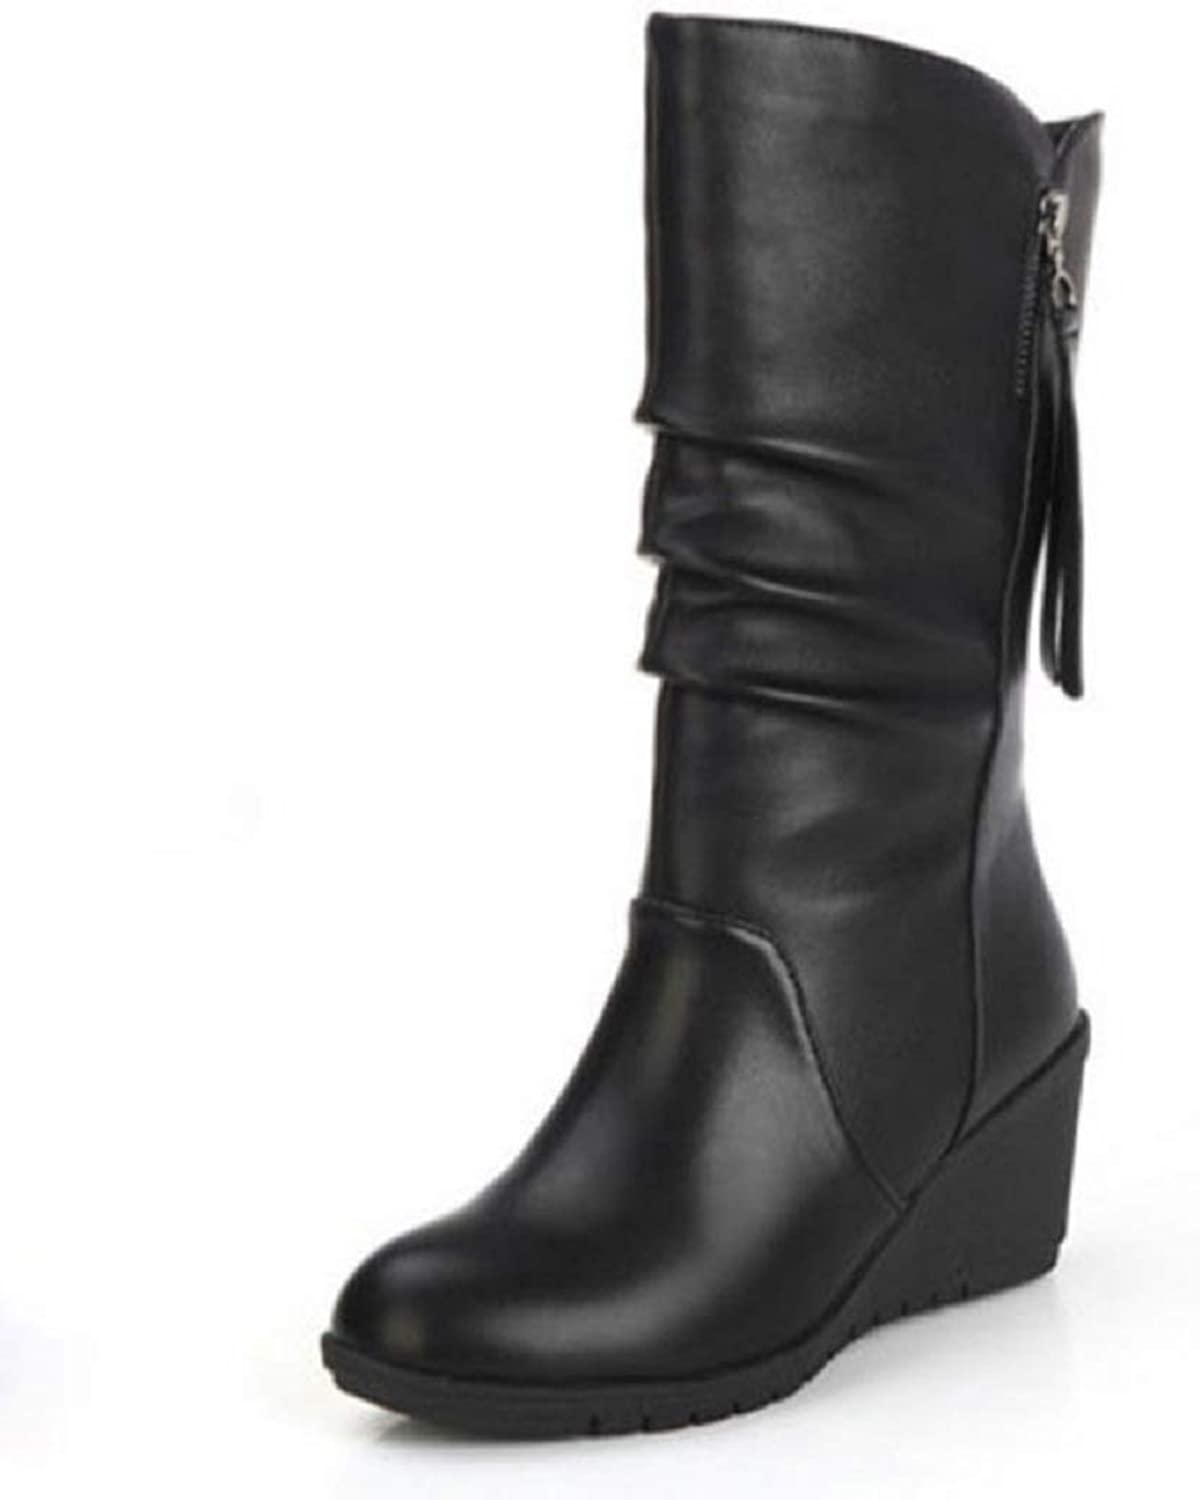 Ladies Women Biker Calf Boots Wedge Boots Trainer Casual Boots Winter Grip Sole Comfortable Warm Ruched Knee Boots Size